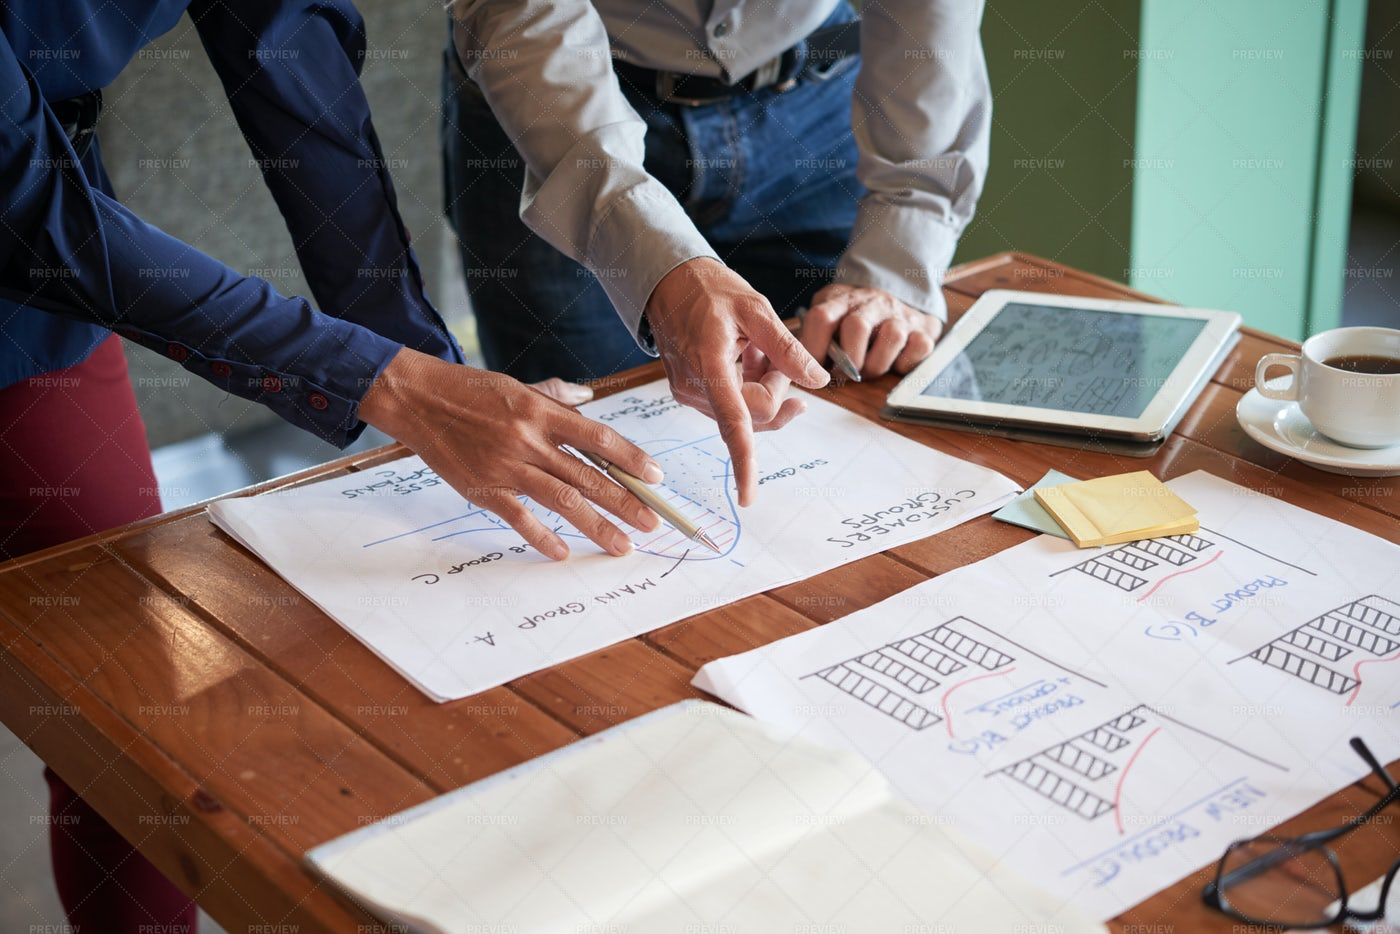 Drawing Business Reports: Stock Photos